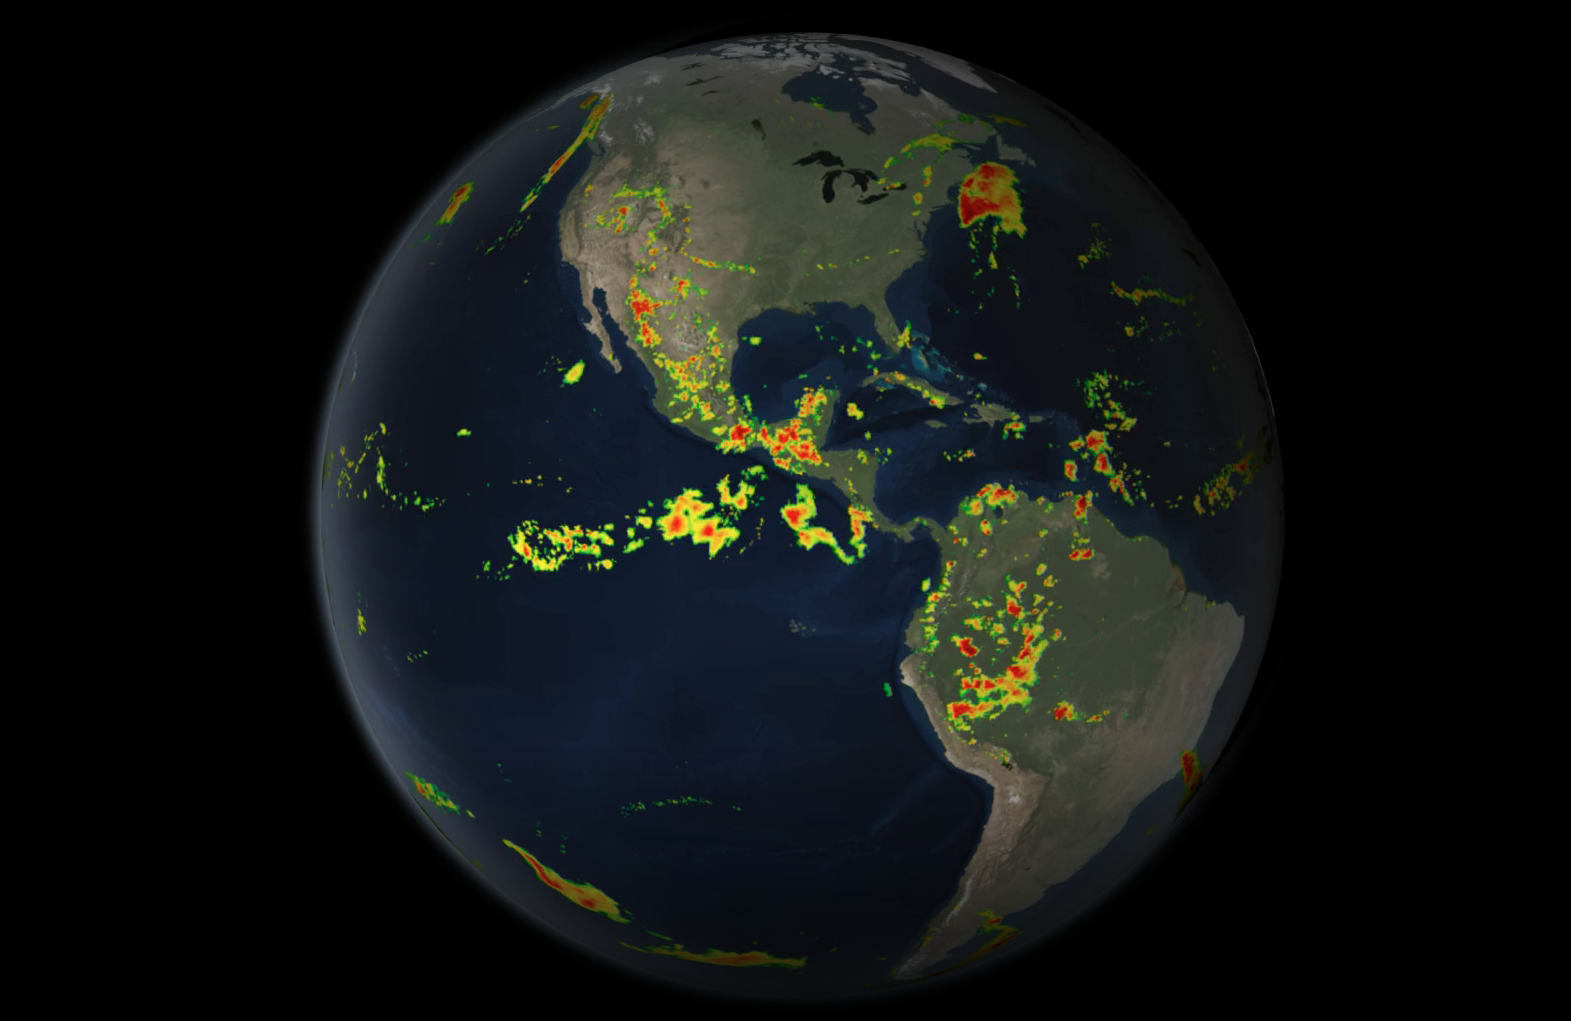 Visualization of the Earth with precipitation data overlay.